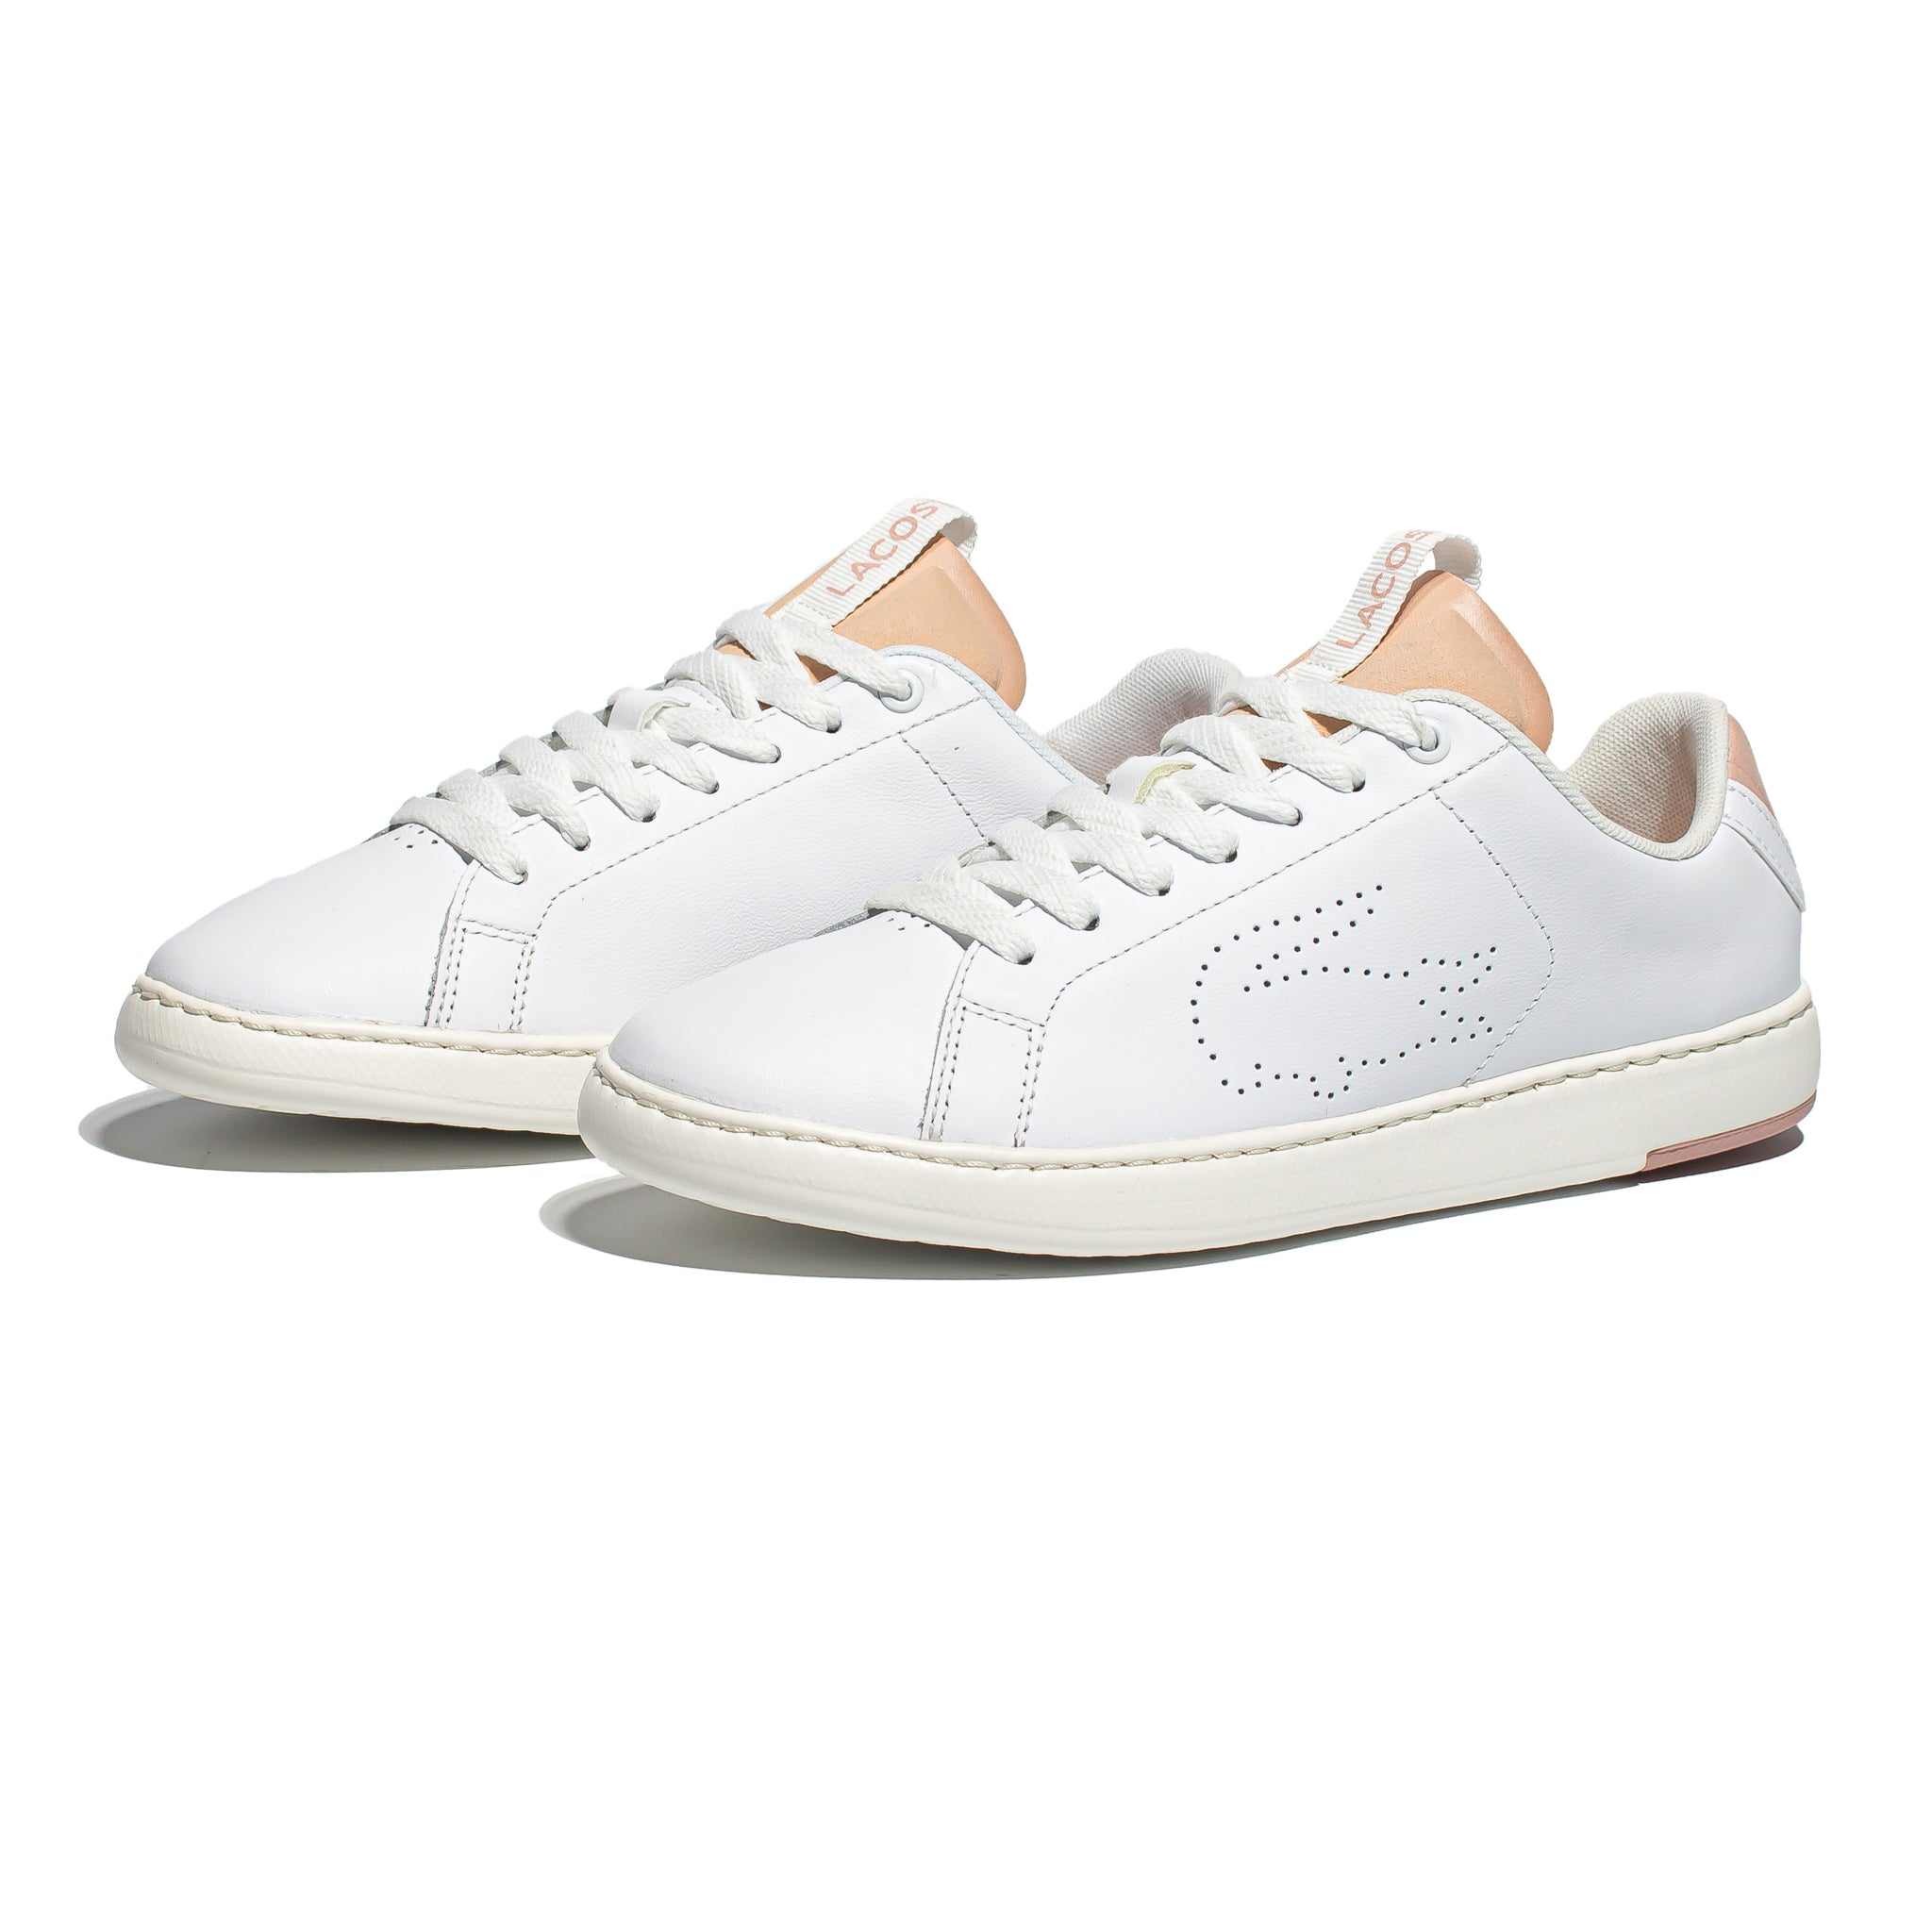 Lacoste Carnaby Evo Light White/Blush